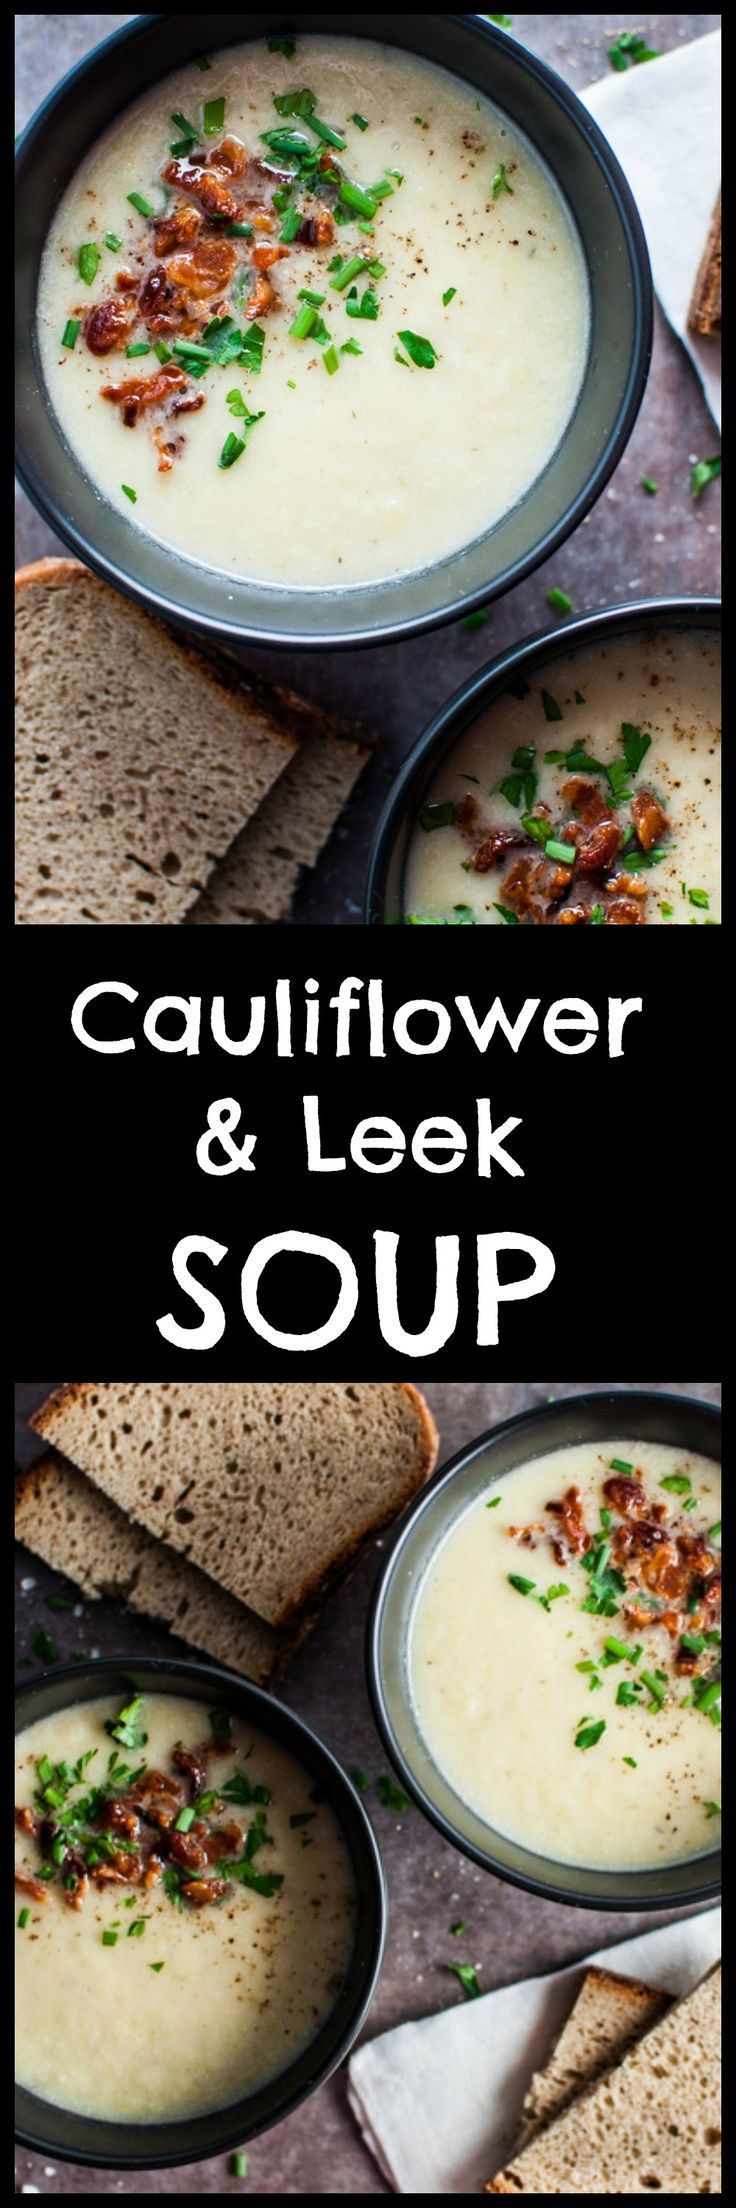 Cauliflower and Leek Soup Cauliflower and leek soup – a light and healthy meal that is ready in only 40 minutes! and Leek Soup Cauliflower and leek soup – a light and healthy meal that is ready in only 40 minutes!Cauliflower and leek soup – a light and healthy meal that is ready in only 40 minutes!